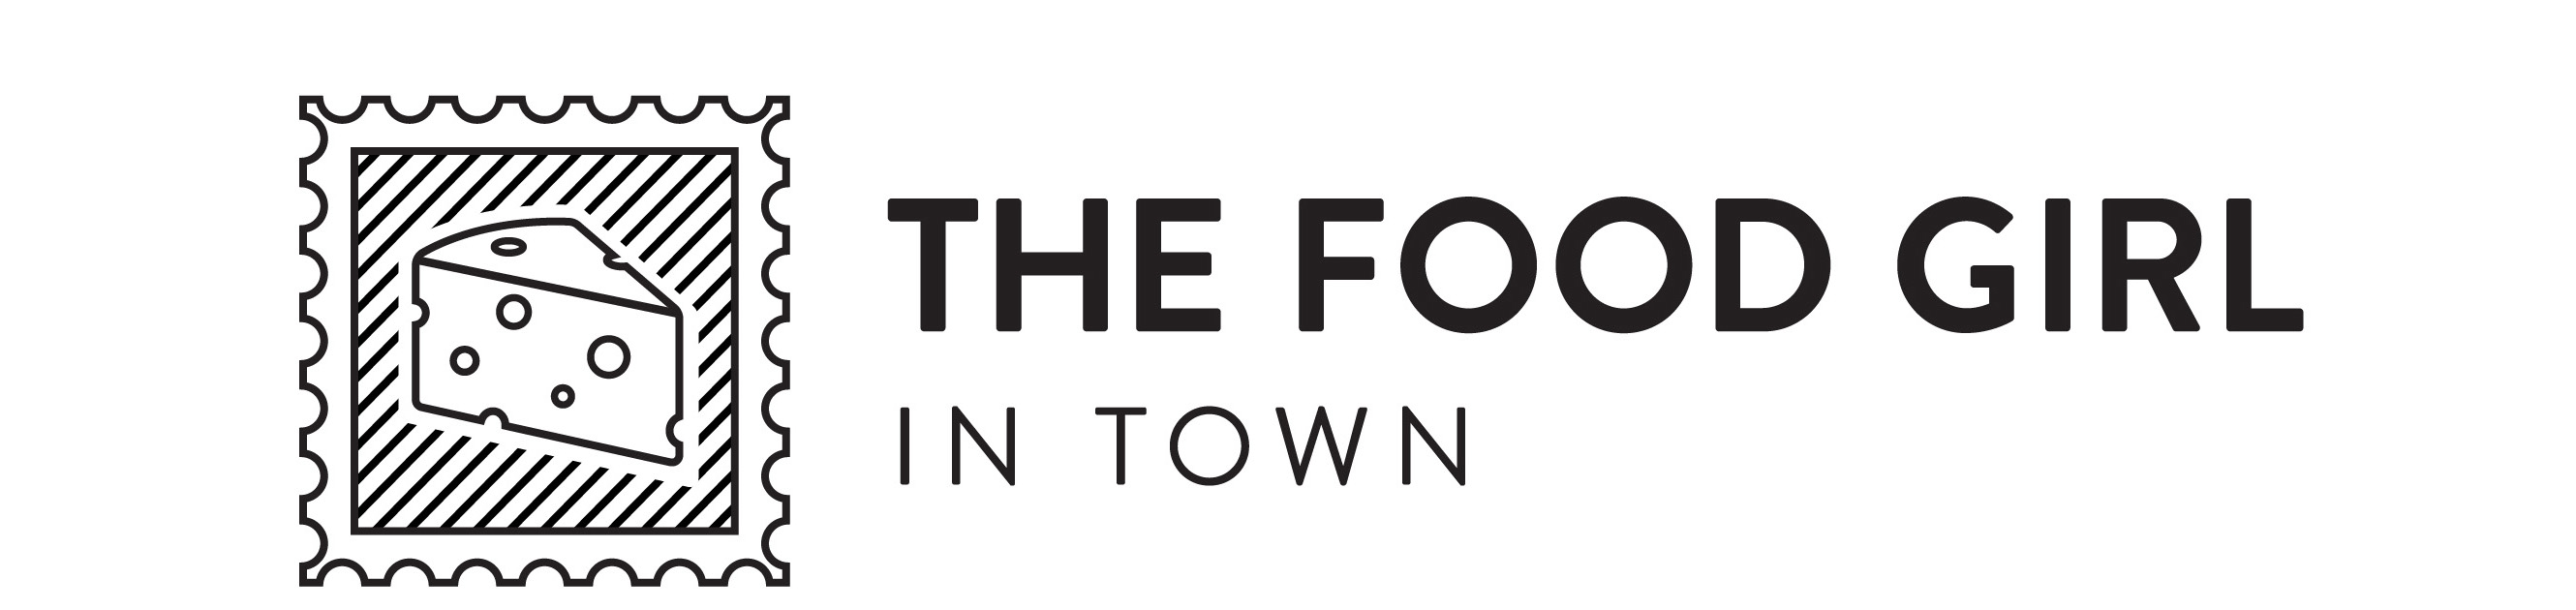 The Food Girl in Town | Food & Travel Blog